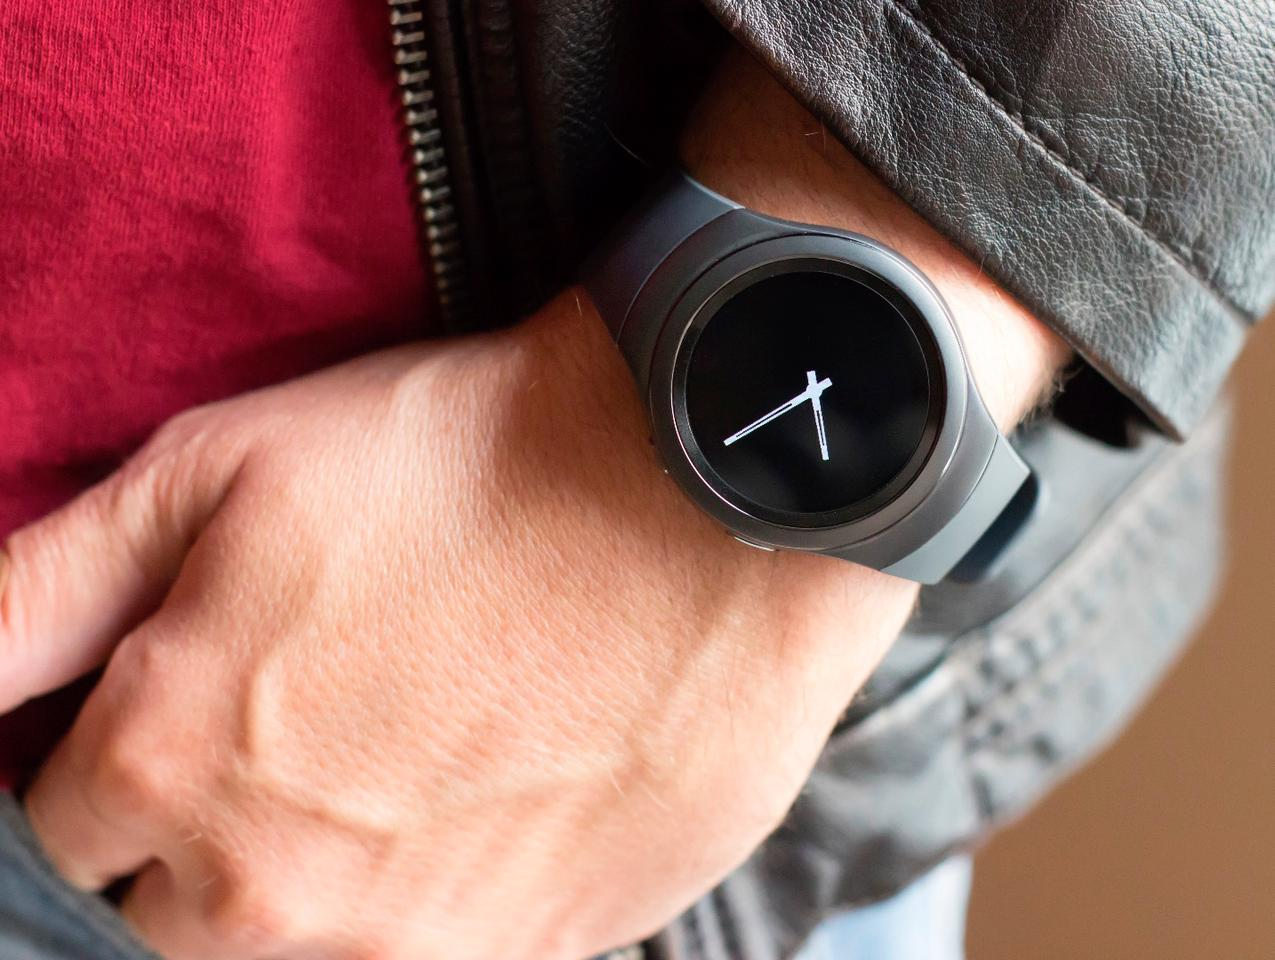 The standard Gear S2 is better-looking than we thought, with its sleek, minimal and modern design